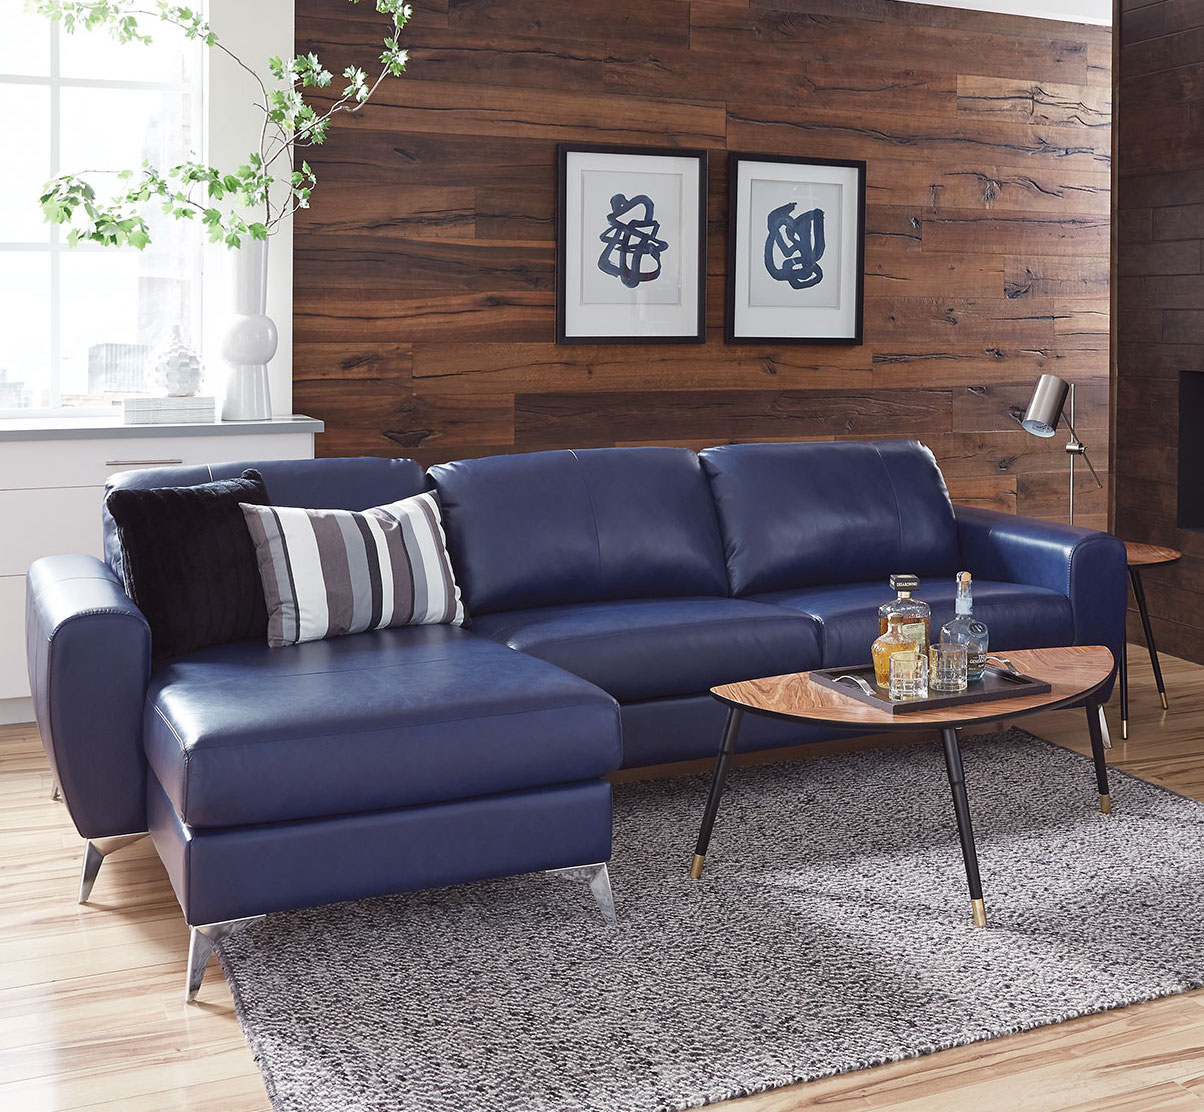 Apartment Size Sofa Sectional 5 Apartment Sized Sofas That Are Lifesavers Hgtv S Decorating